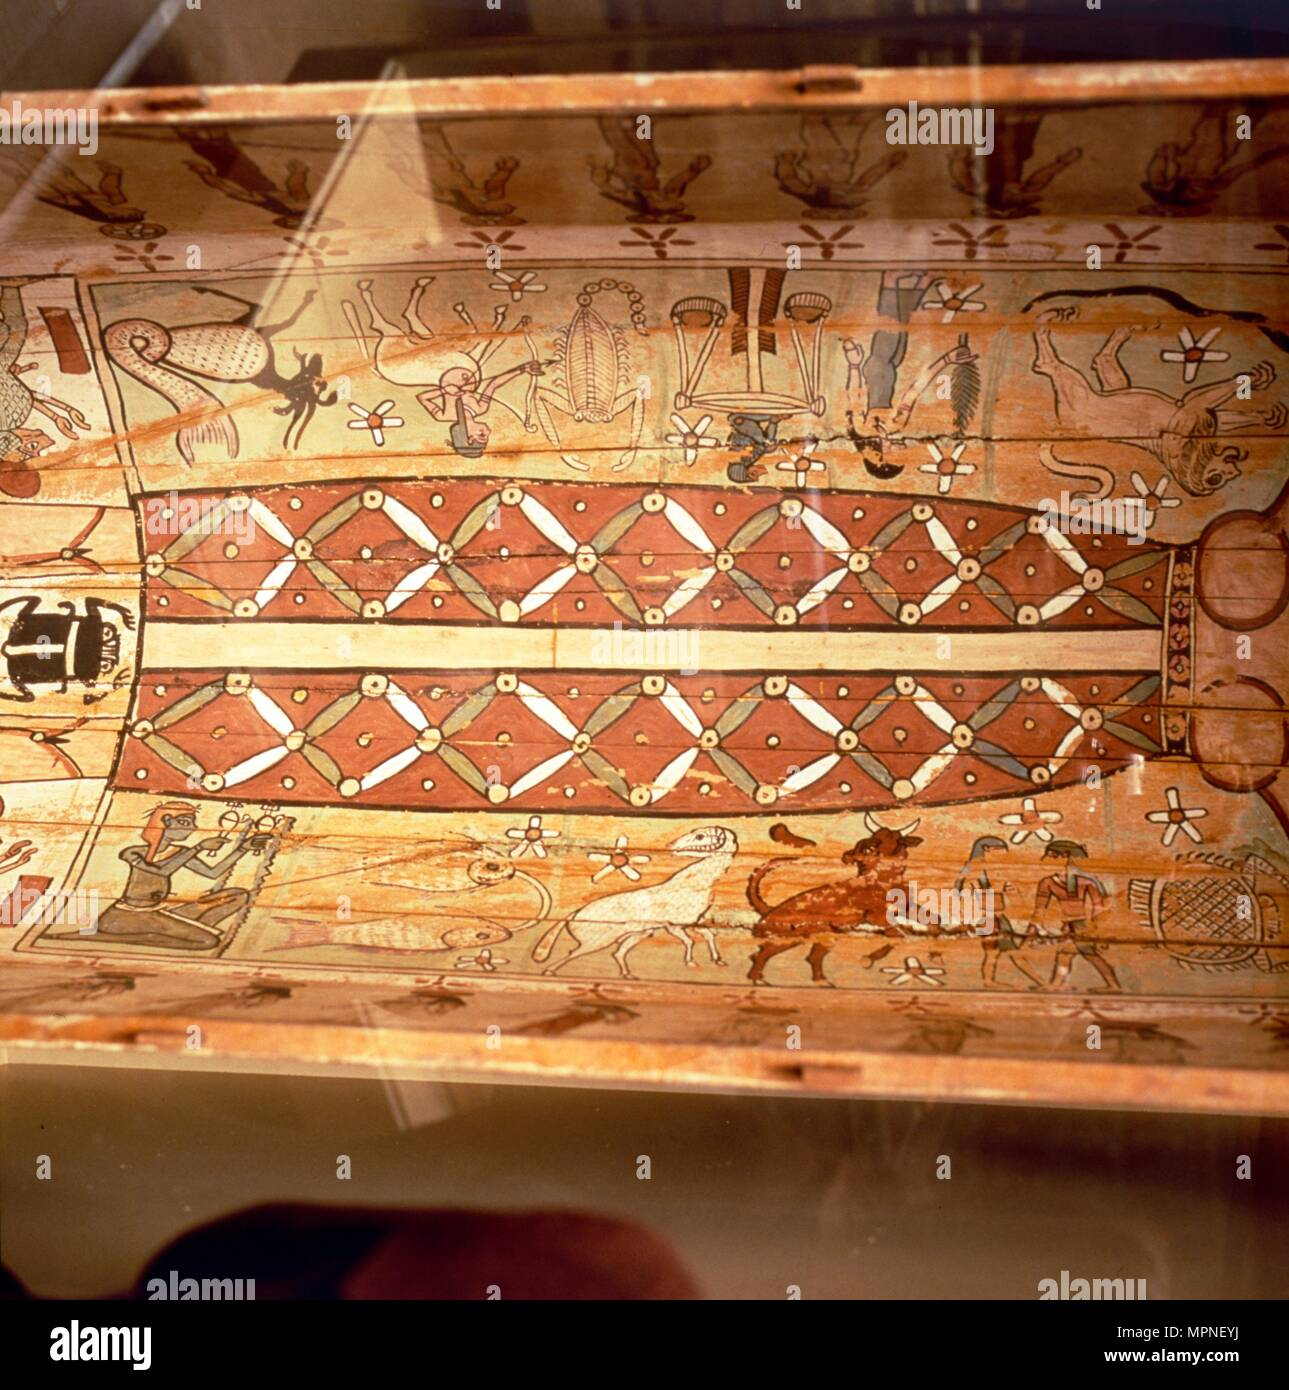 Interior of Egyptian Coffin with Sky - Goddess Nut and Zodiac Signs, 2nd century. Artist: Unknown. Stock Photo